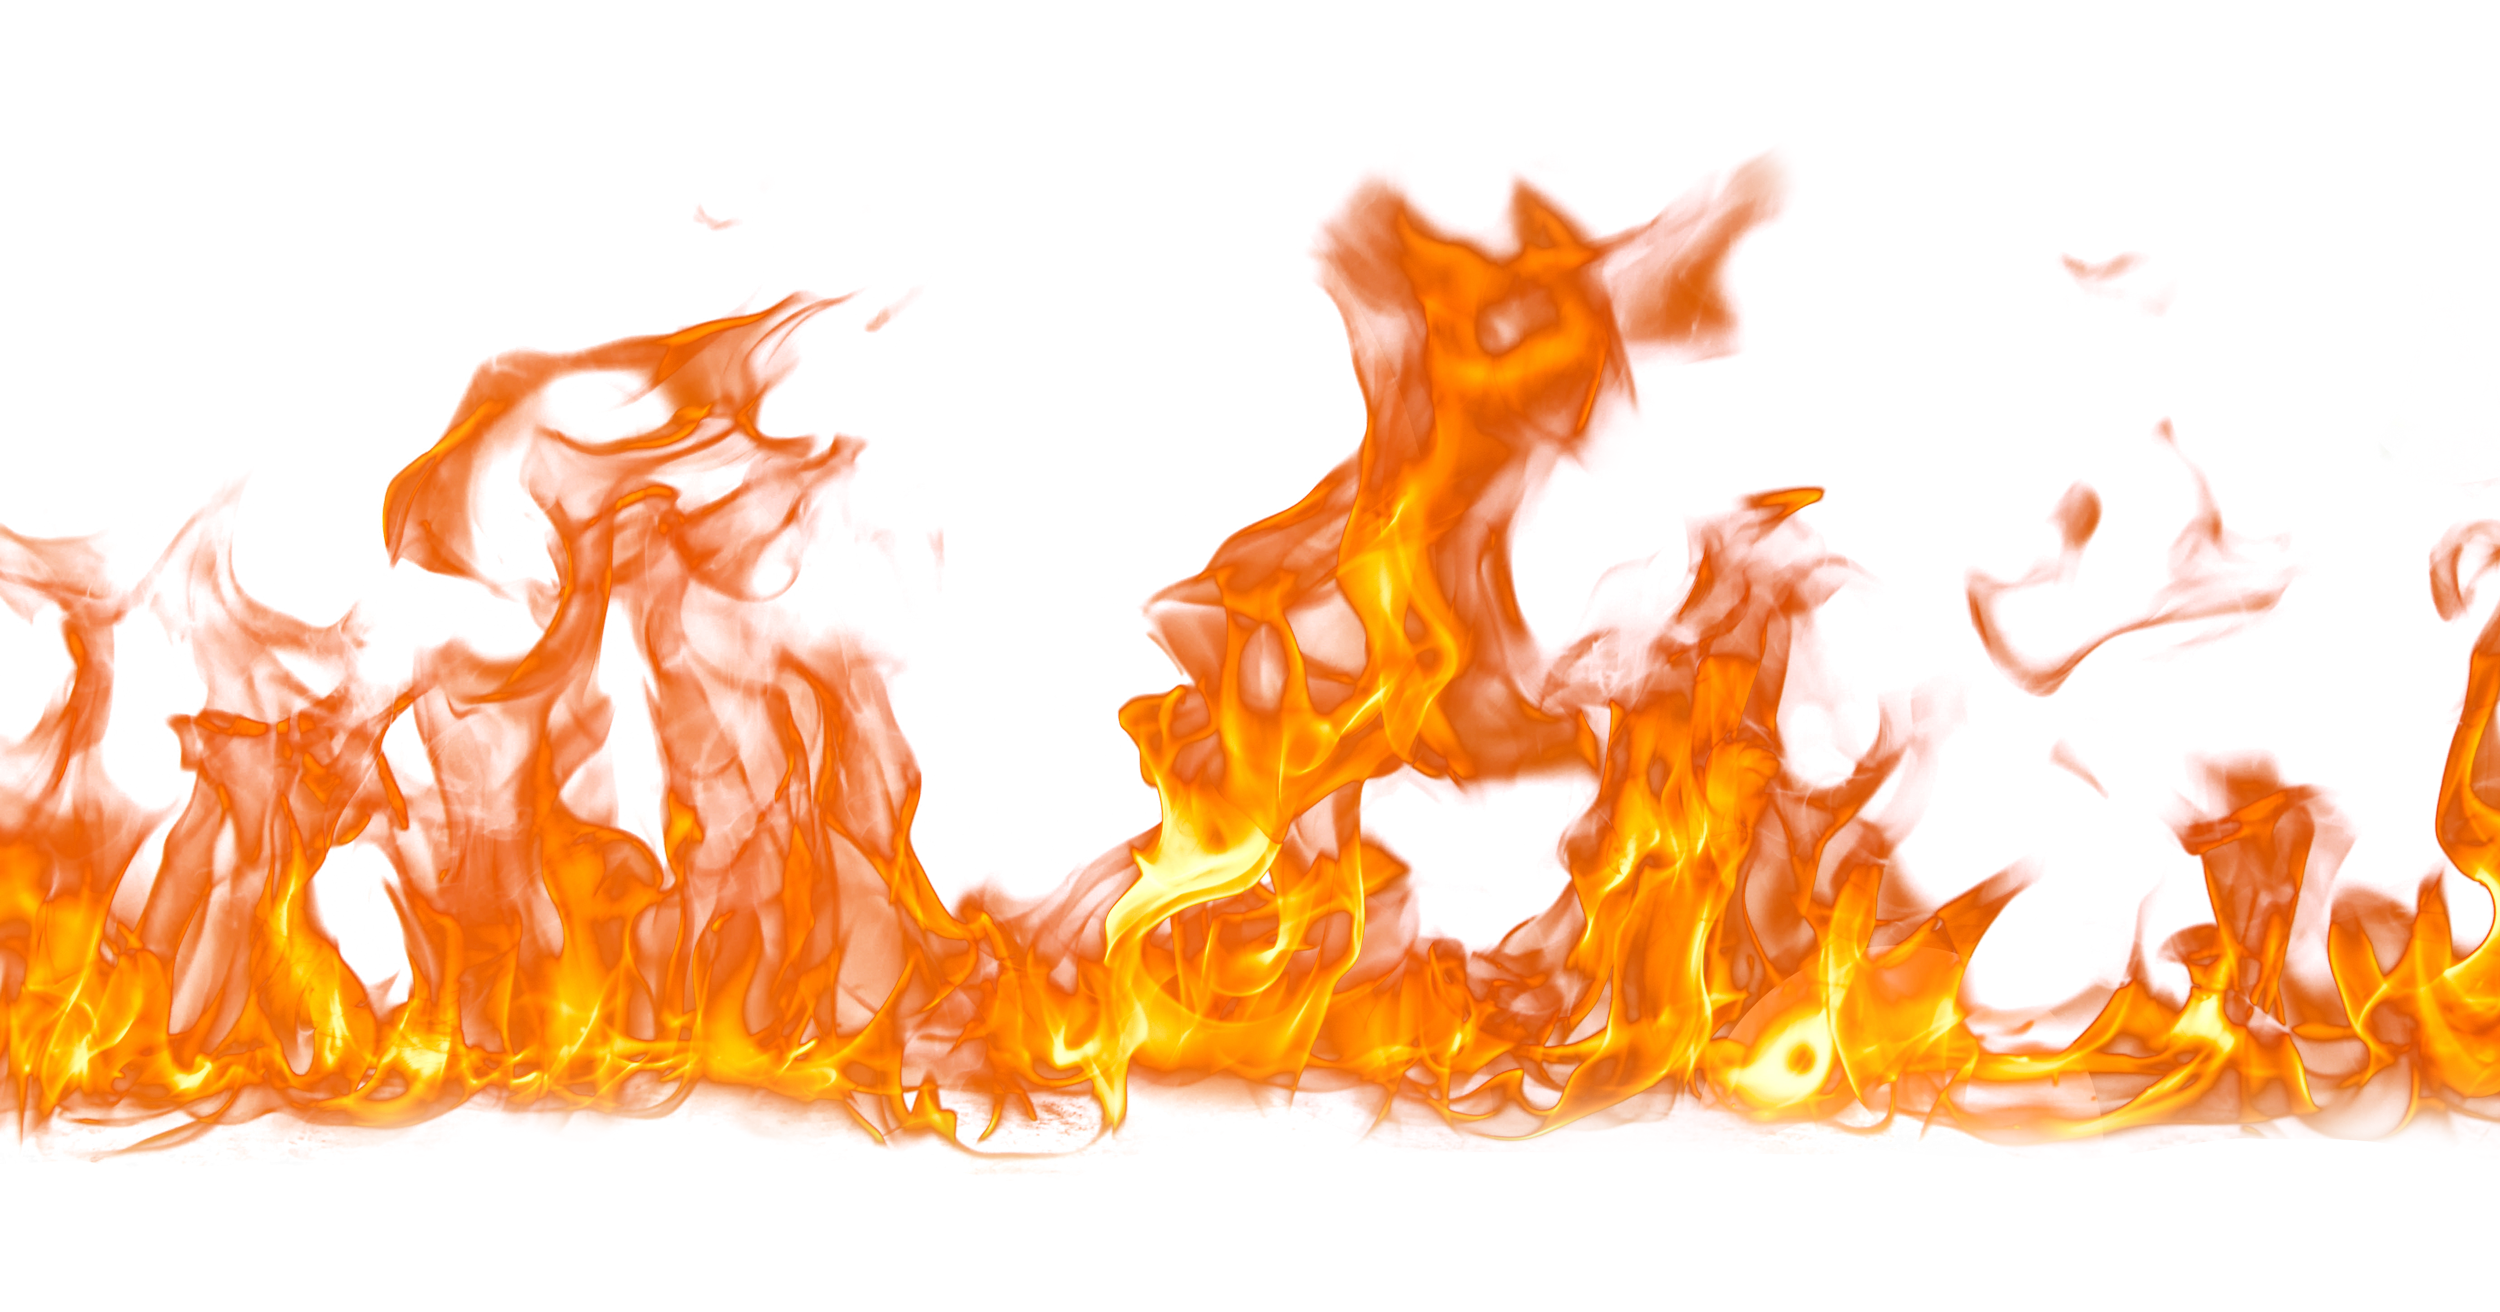 Fire flames png. Flame image pngpix resolution